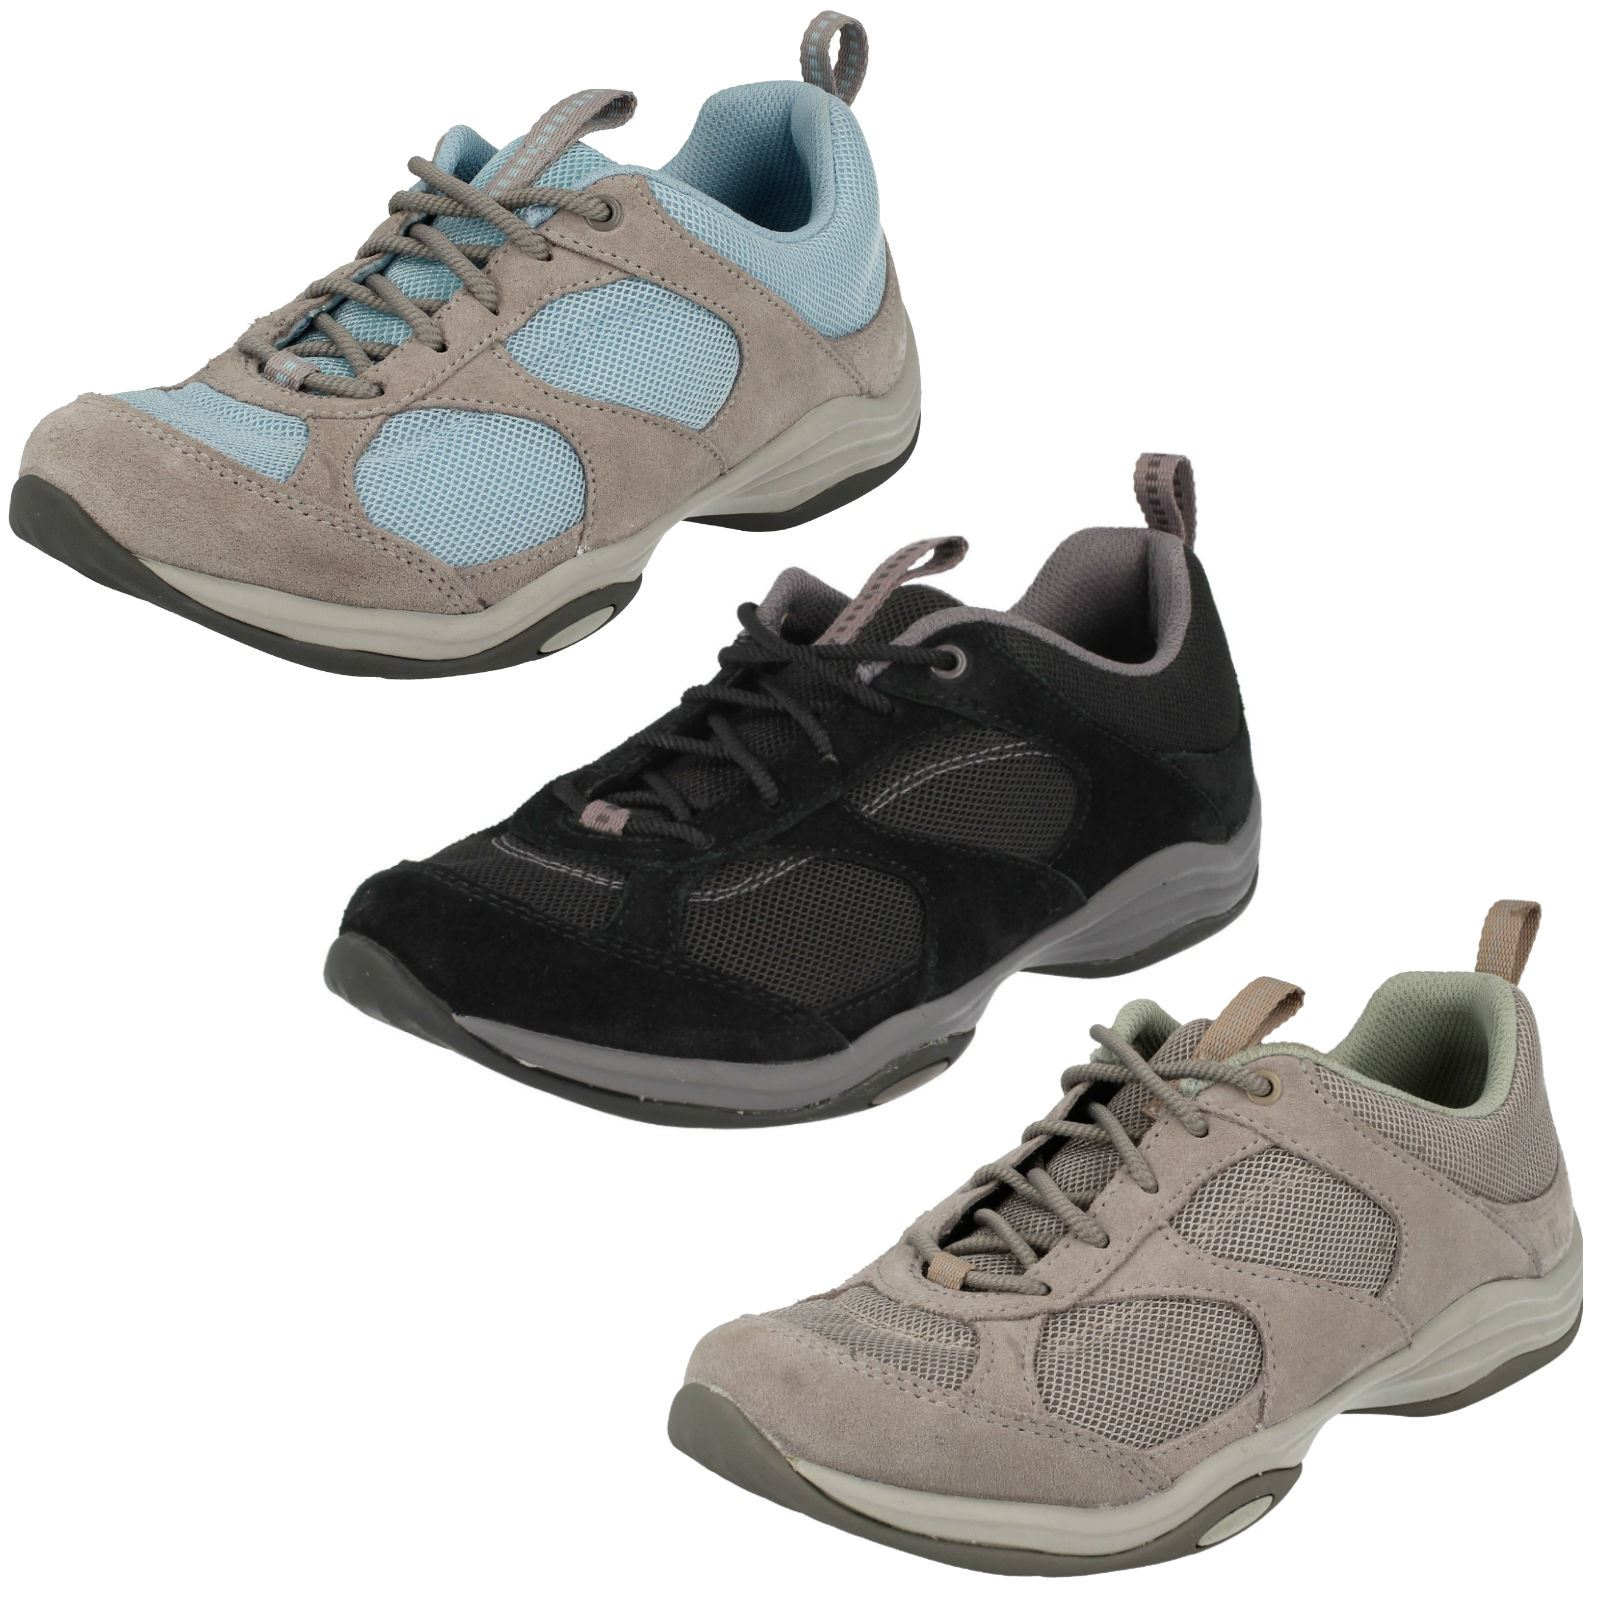 Details about Ladies Clarks Active Wear Trainers